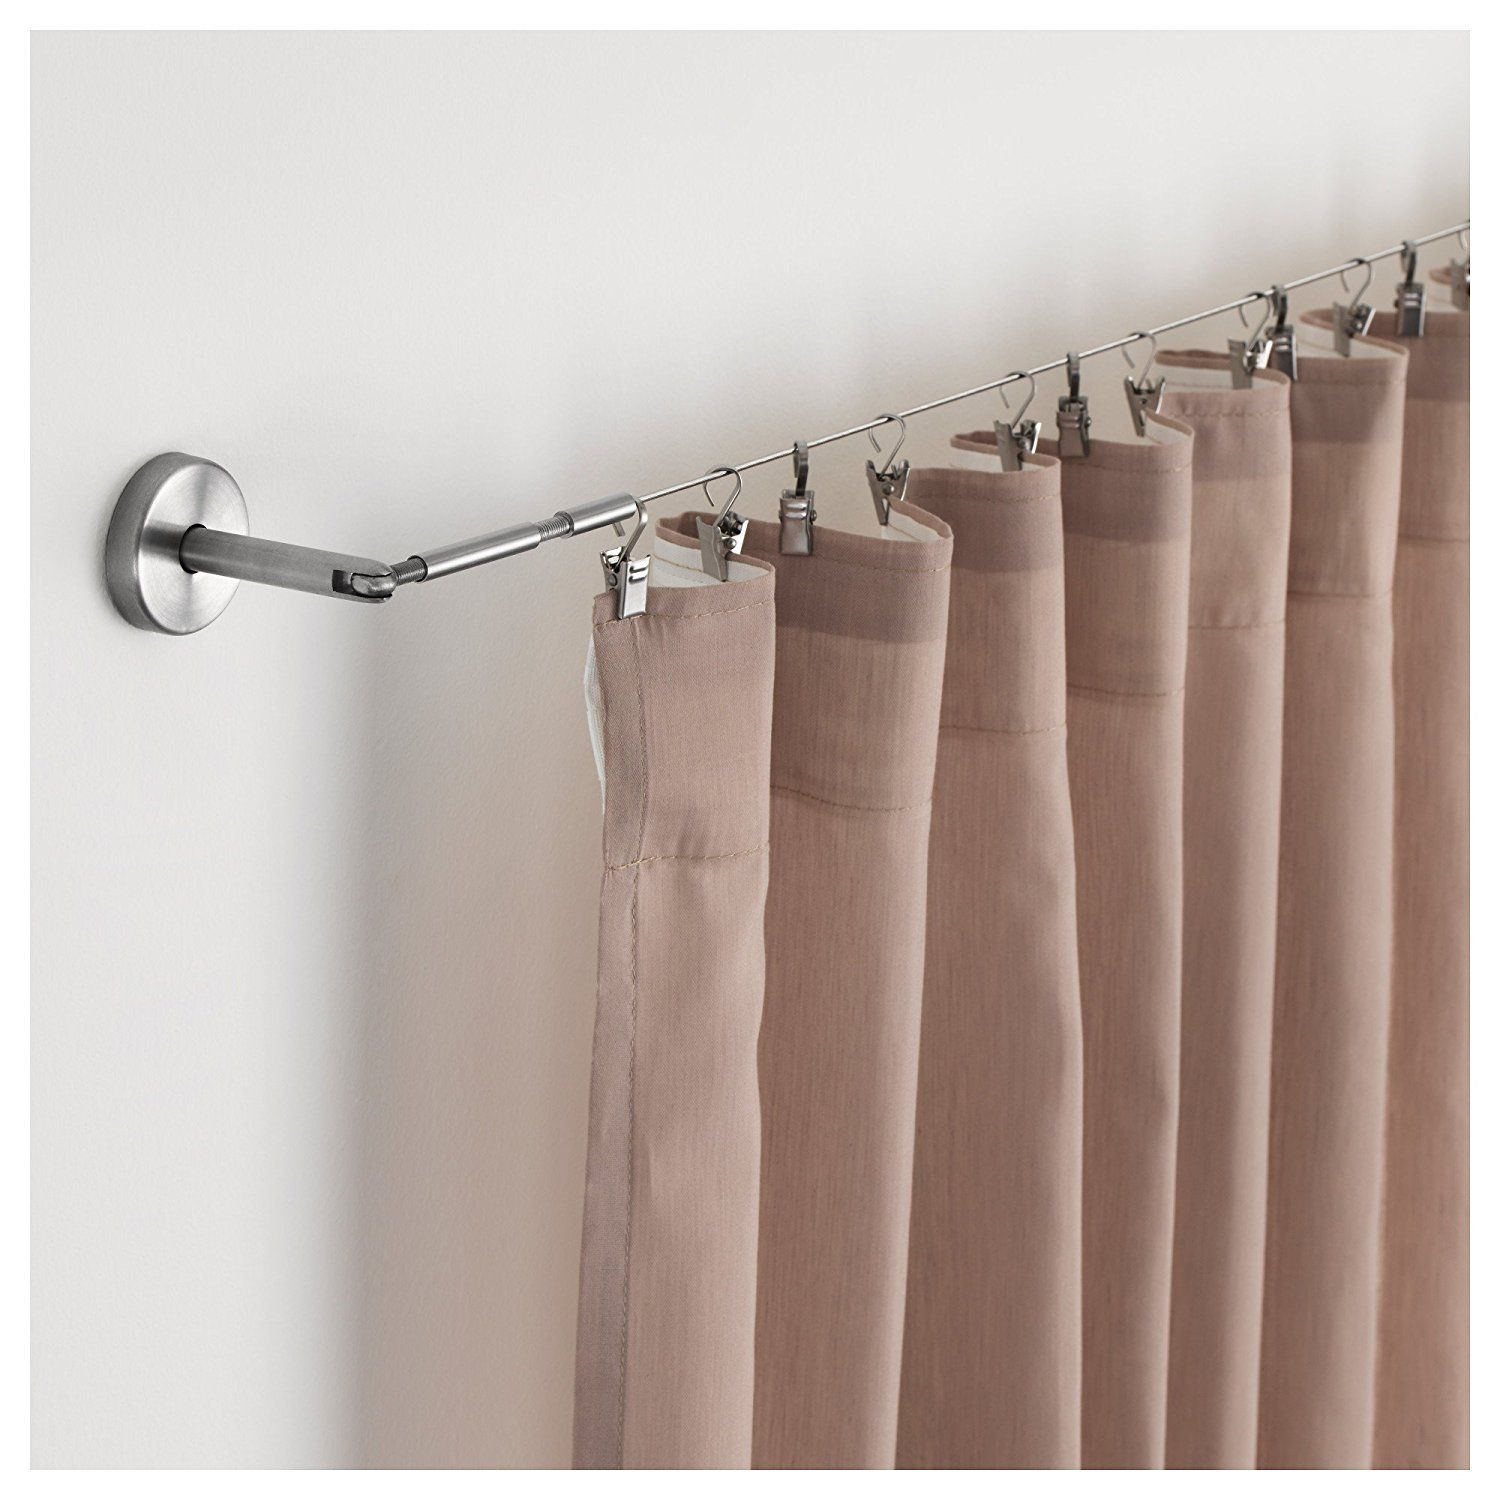 Ikea Riktig Stainless Steel Curtain Hook With Clip 24 Per Package Baby Here Hung On A Wire Ikea Curtain Rods Curtain Wire Room Divider Curtain